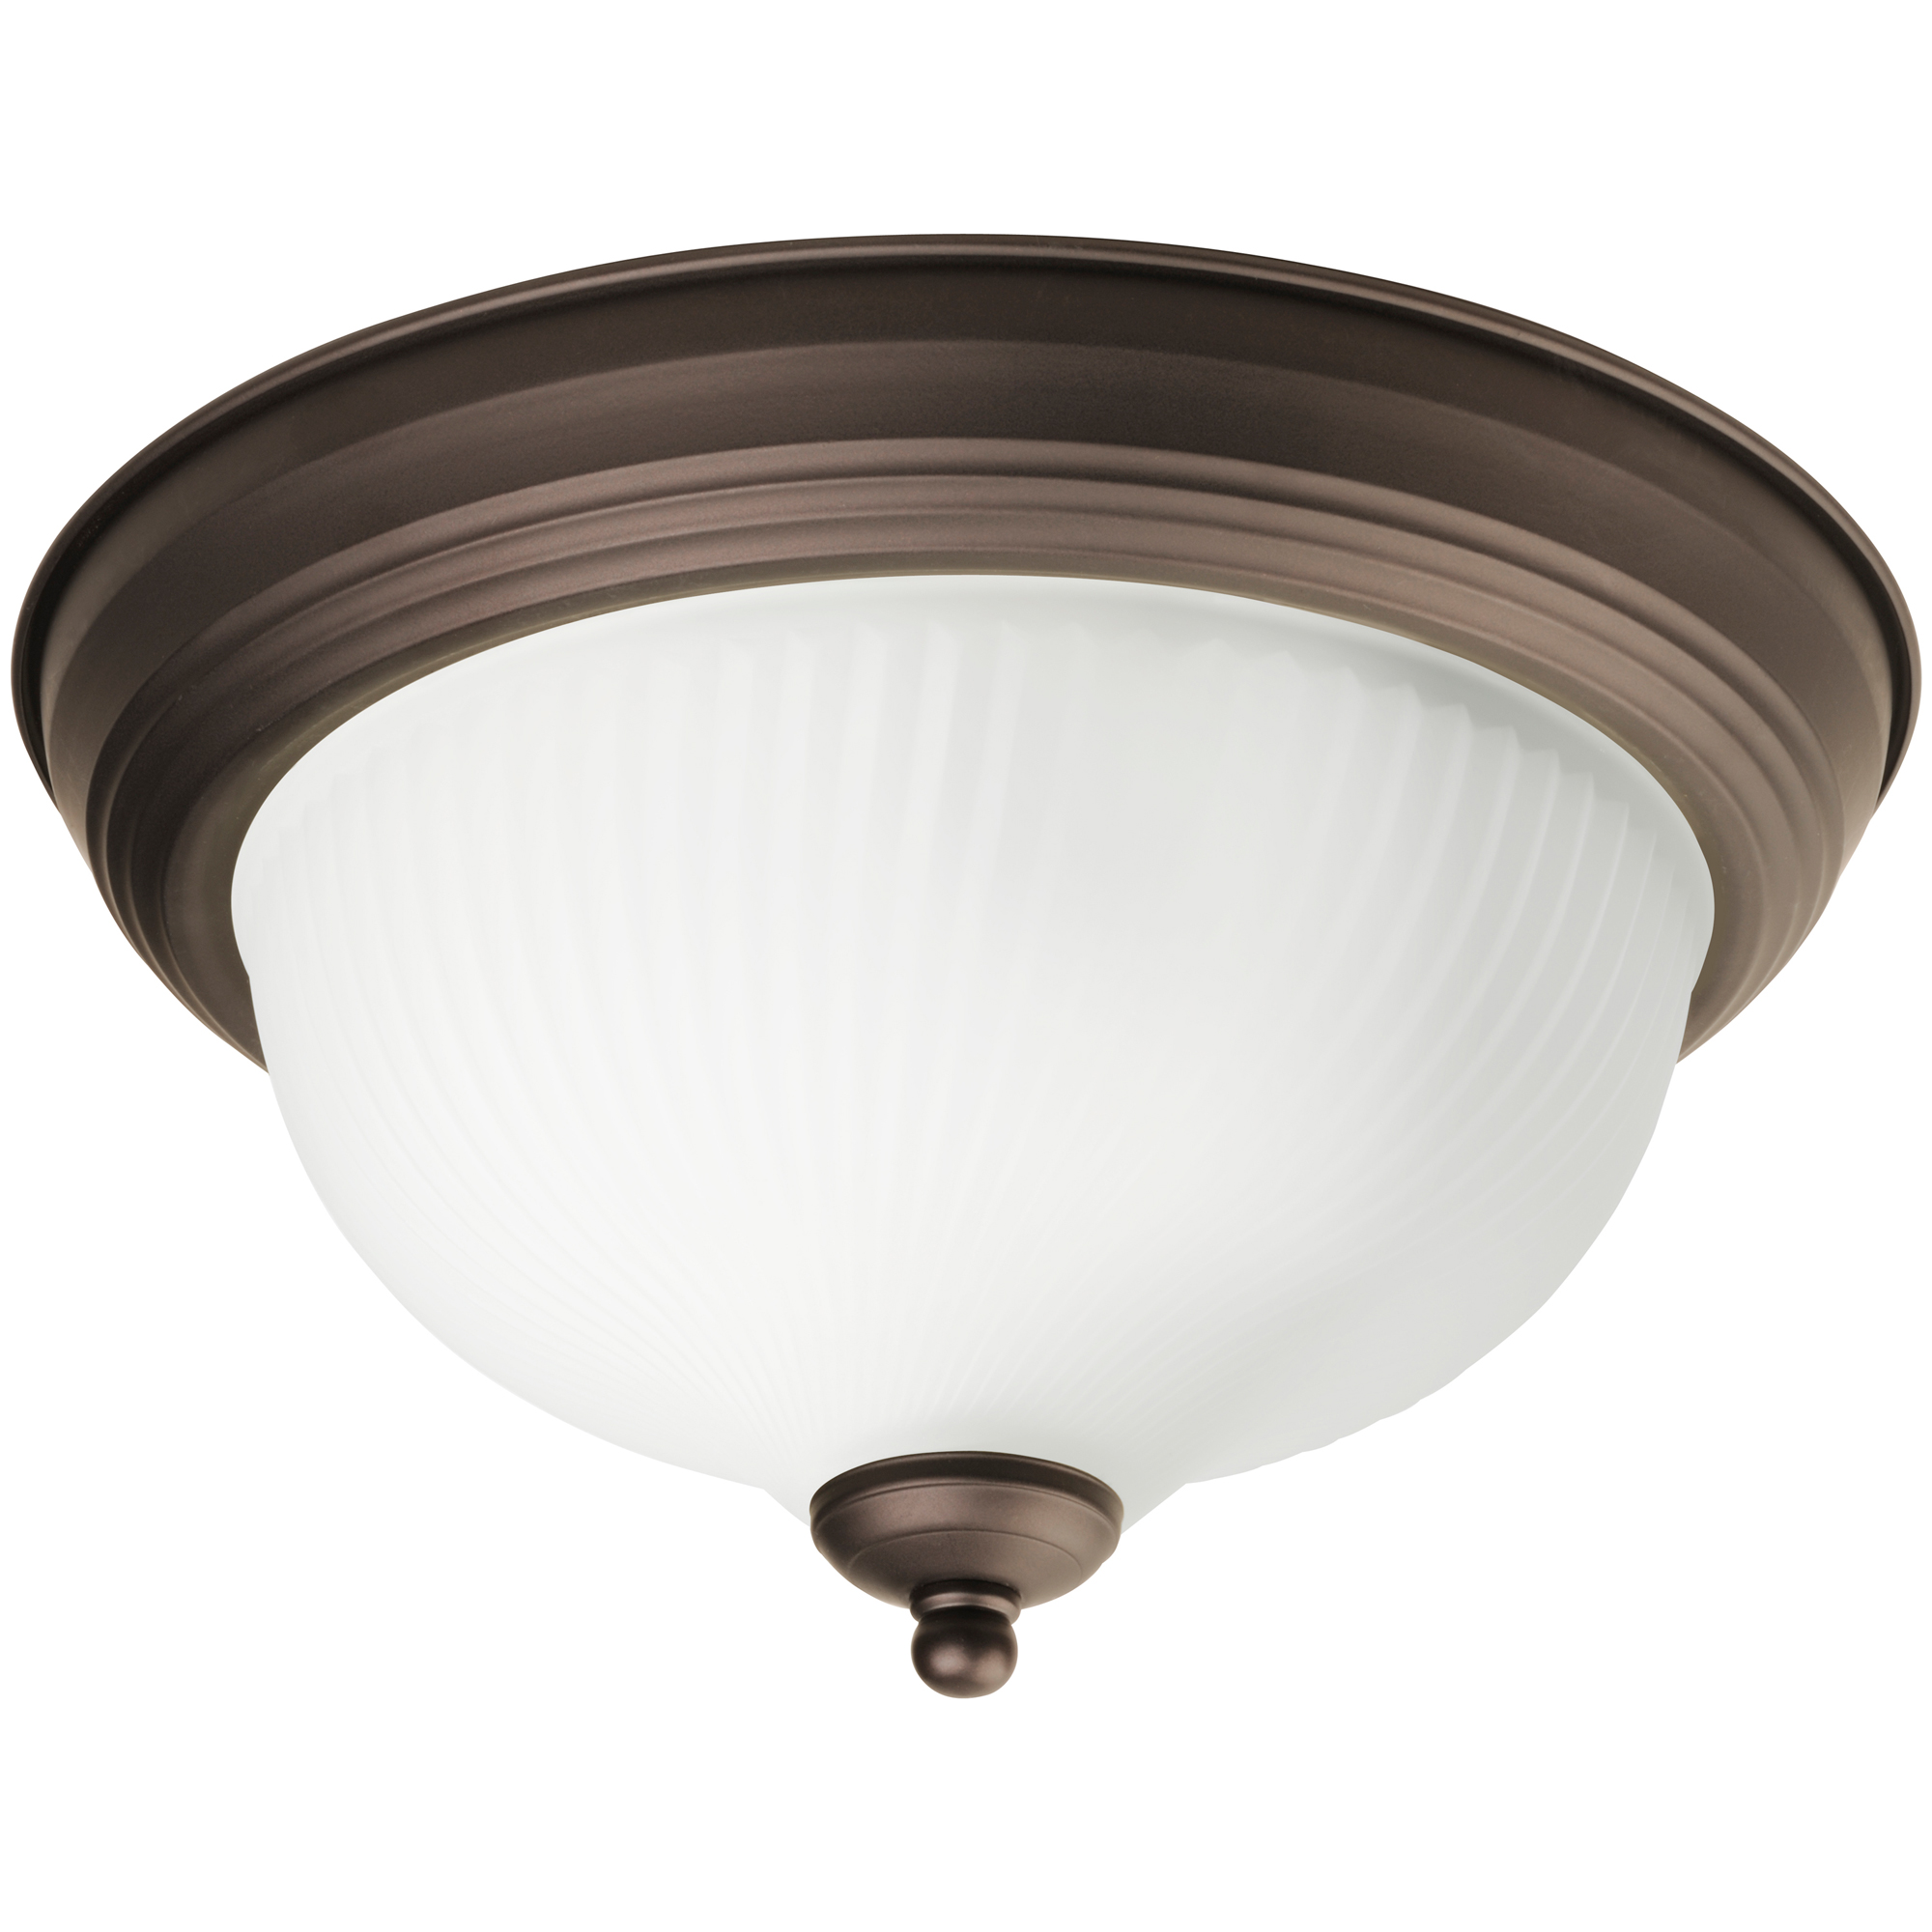 "Chapter 11"" Decorative Indoor Ceiling Flushmount w/ LED Bulbs, Oil Rubbed Bronze"